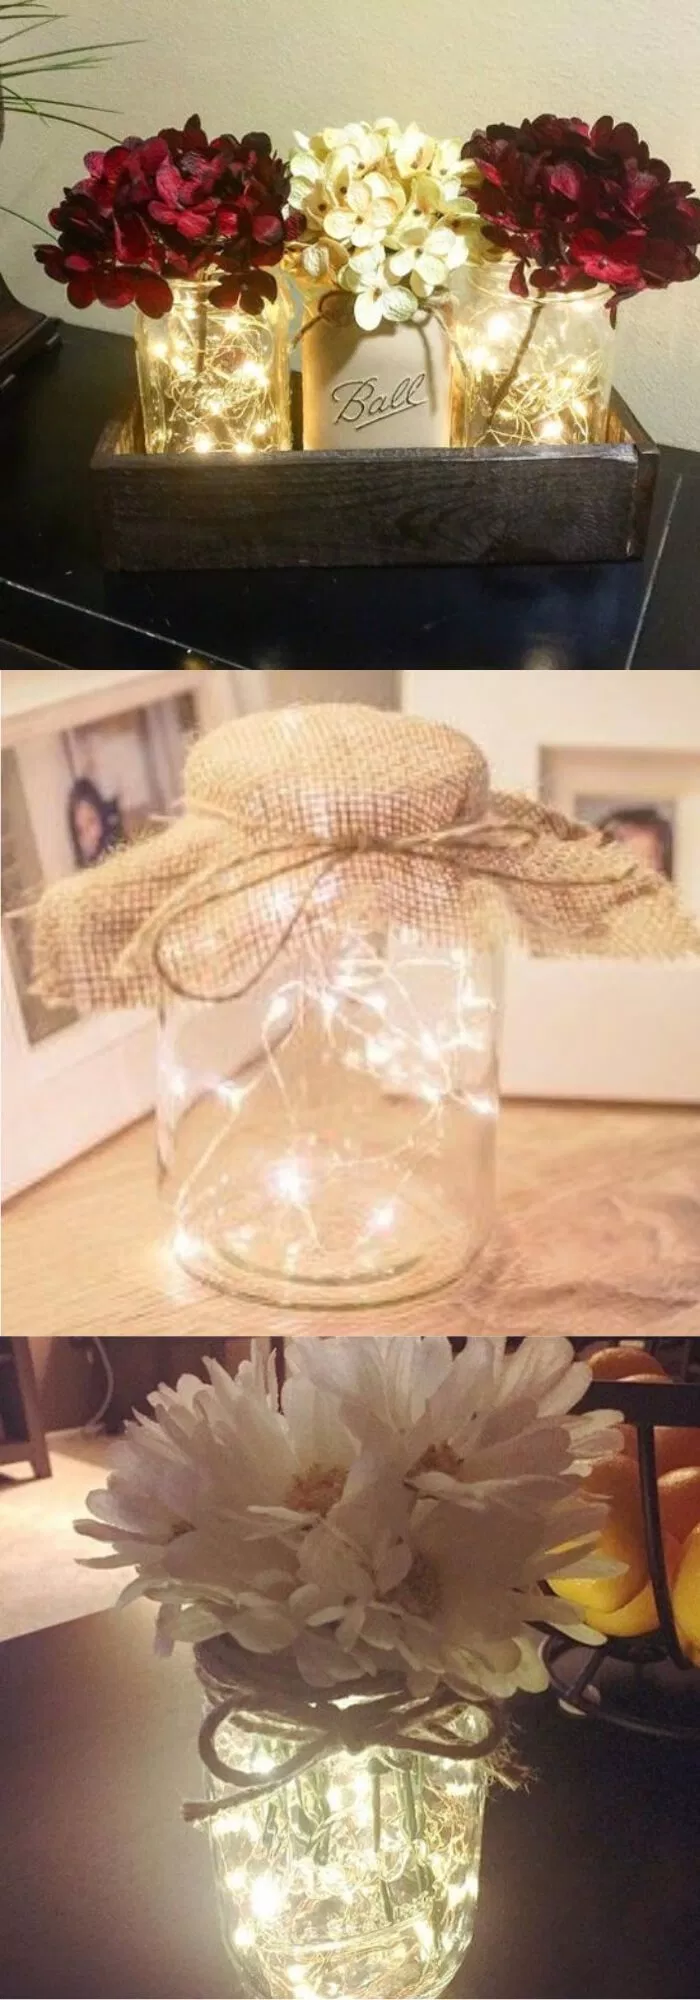 26+ Awesome DIY Fairy Light Decor Ideas For Your House For 2019 images